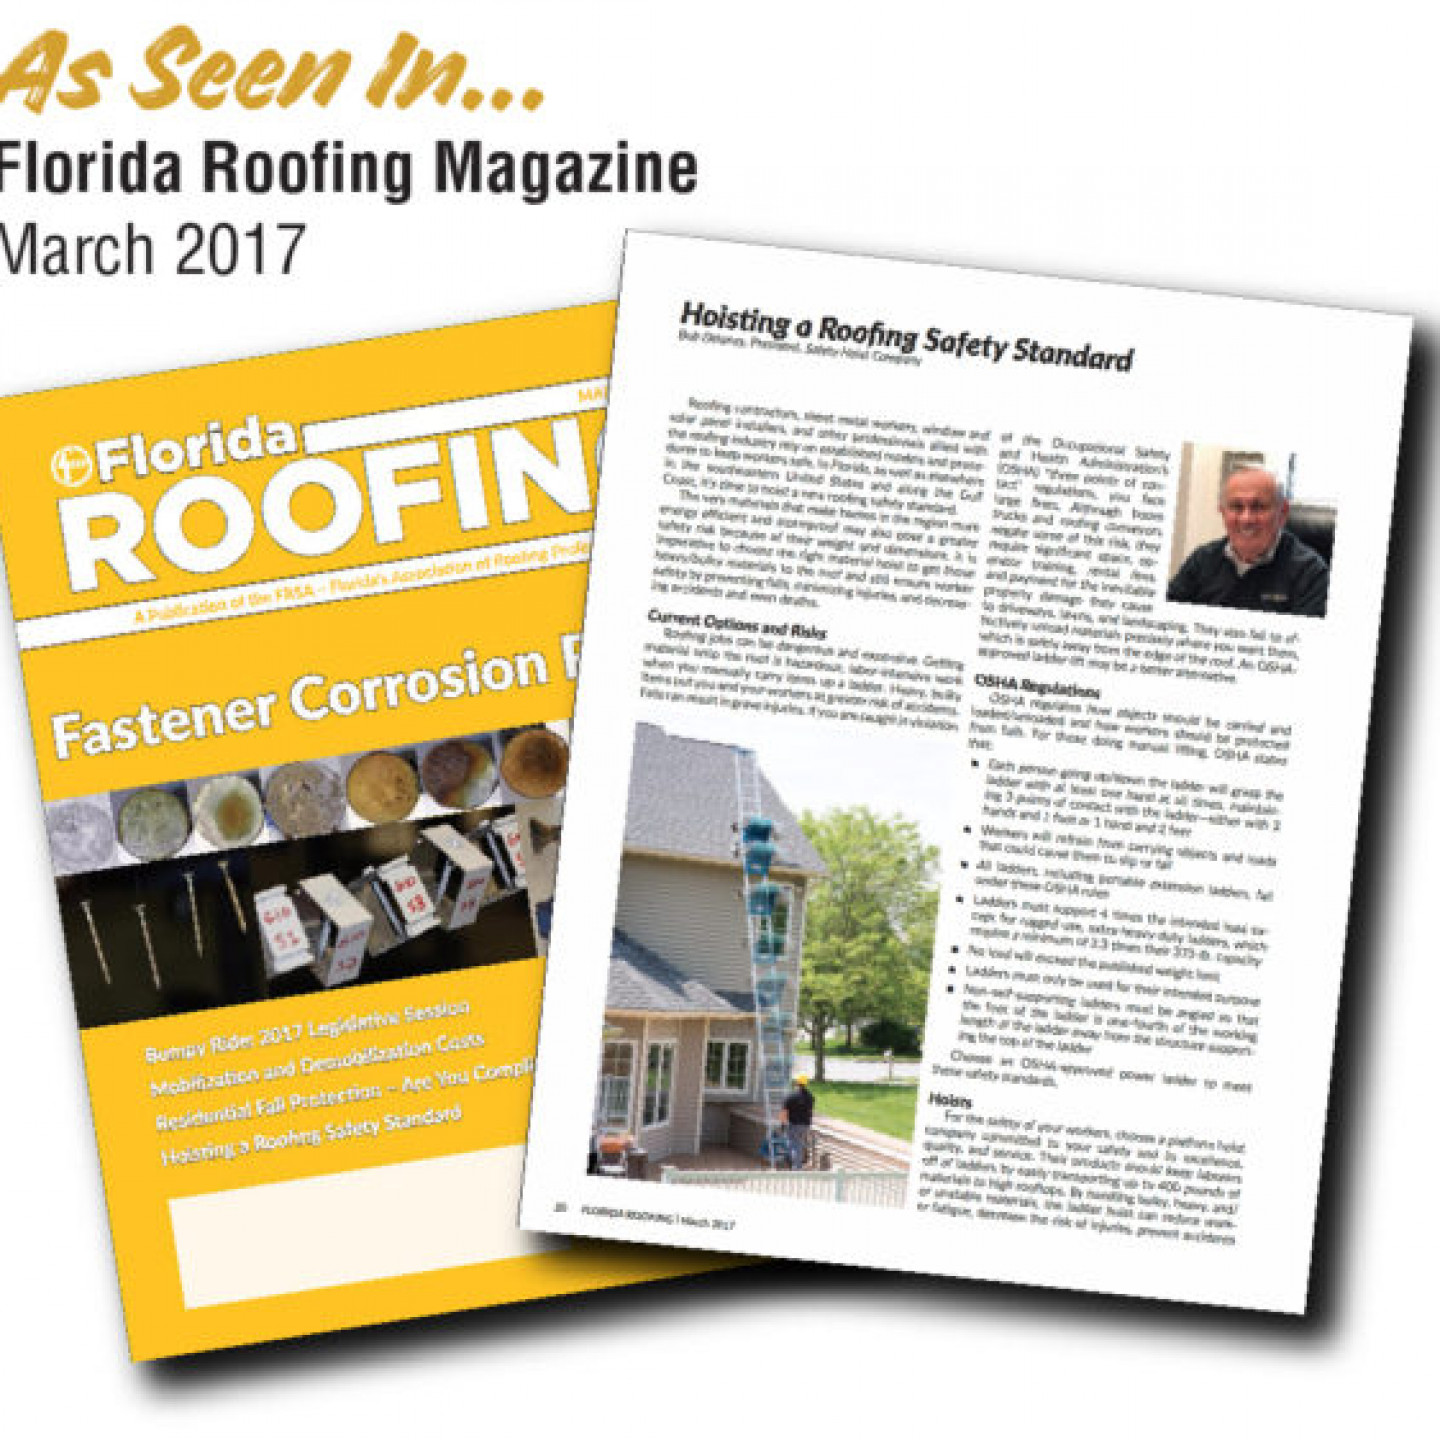 As-Seen-In-FL-Roofing-Magazine-Cover-e1494003868322